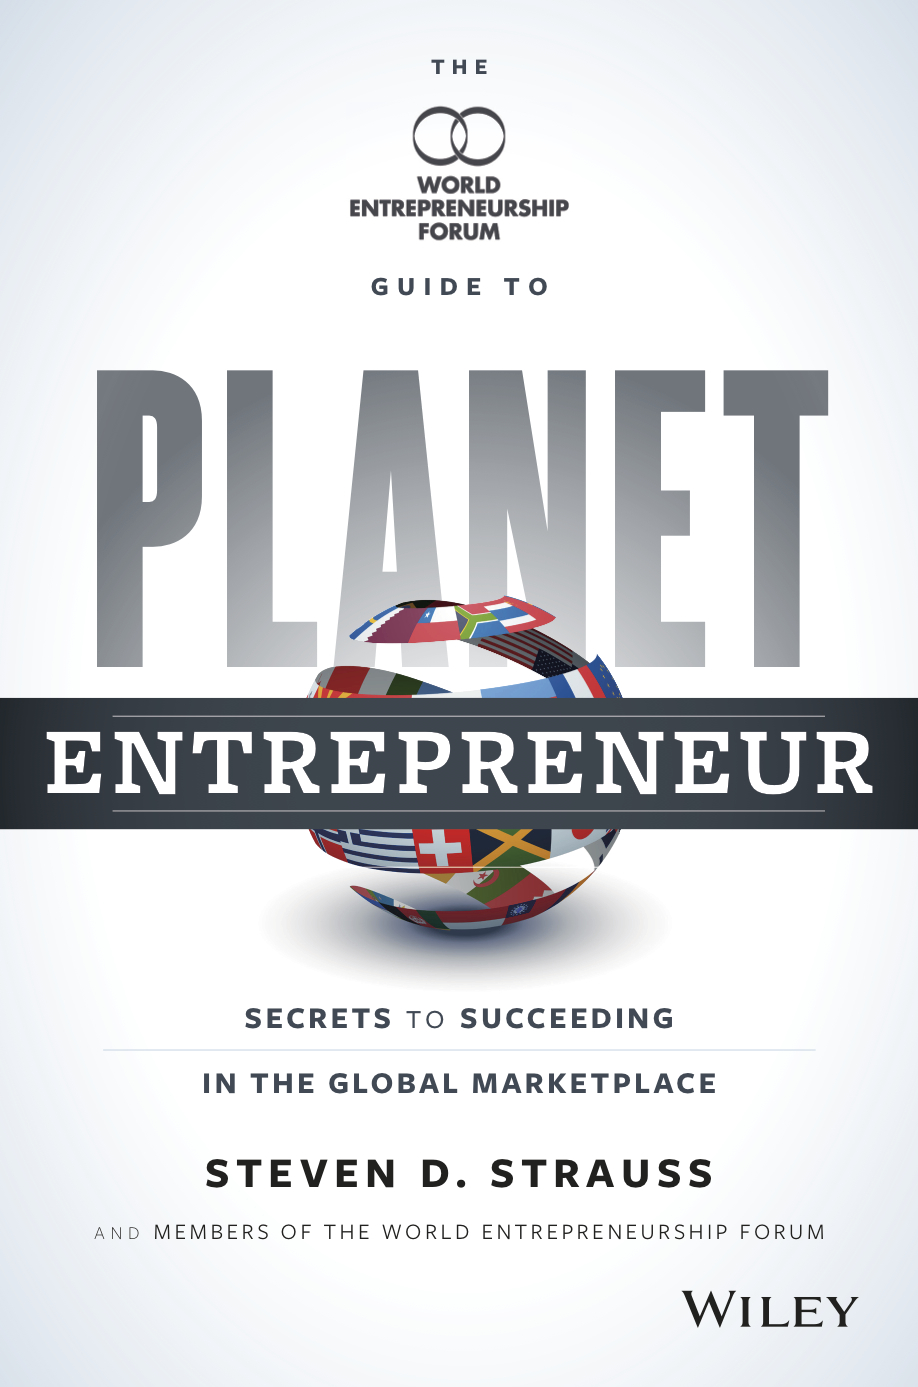 My First Chapter Published in a Book - Going Green: Business as an Agent of Change